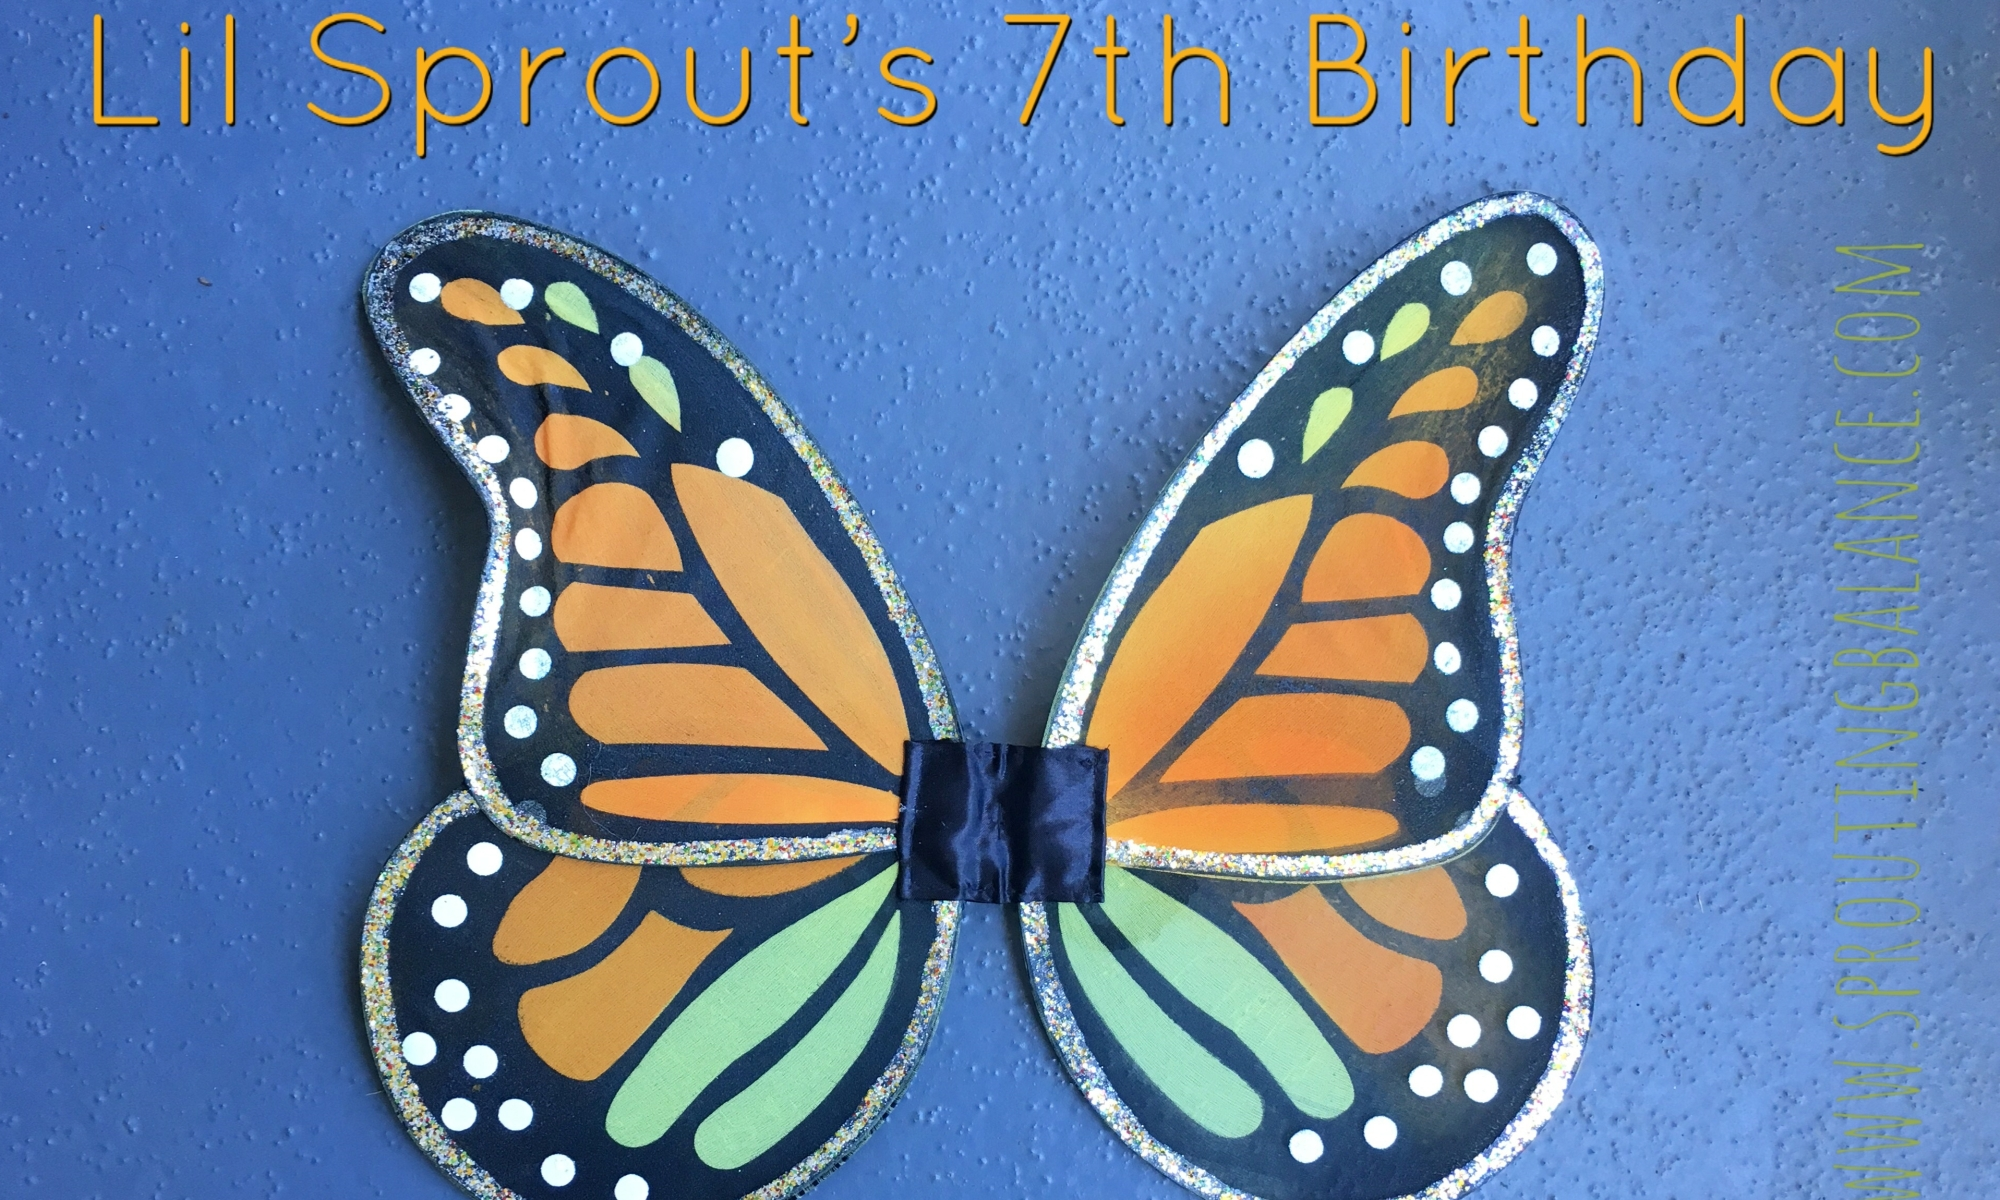 Lil Sprout's 7th Birthday - Butterfly Garden | www.sproutingbalance.com | #butterfly #garden #birthday #girl #crafts #gardening